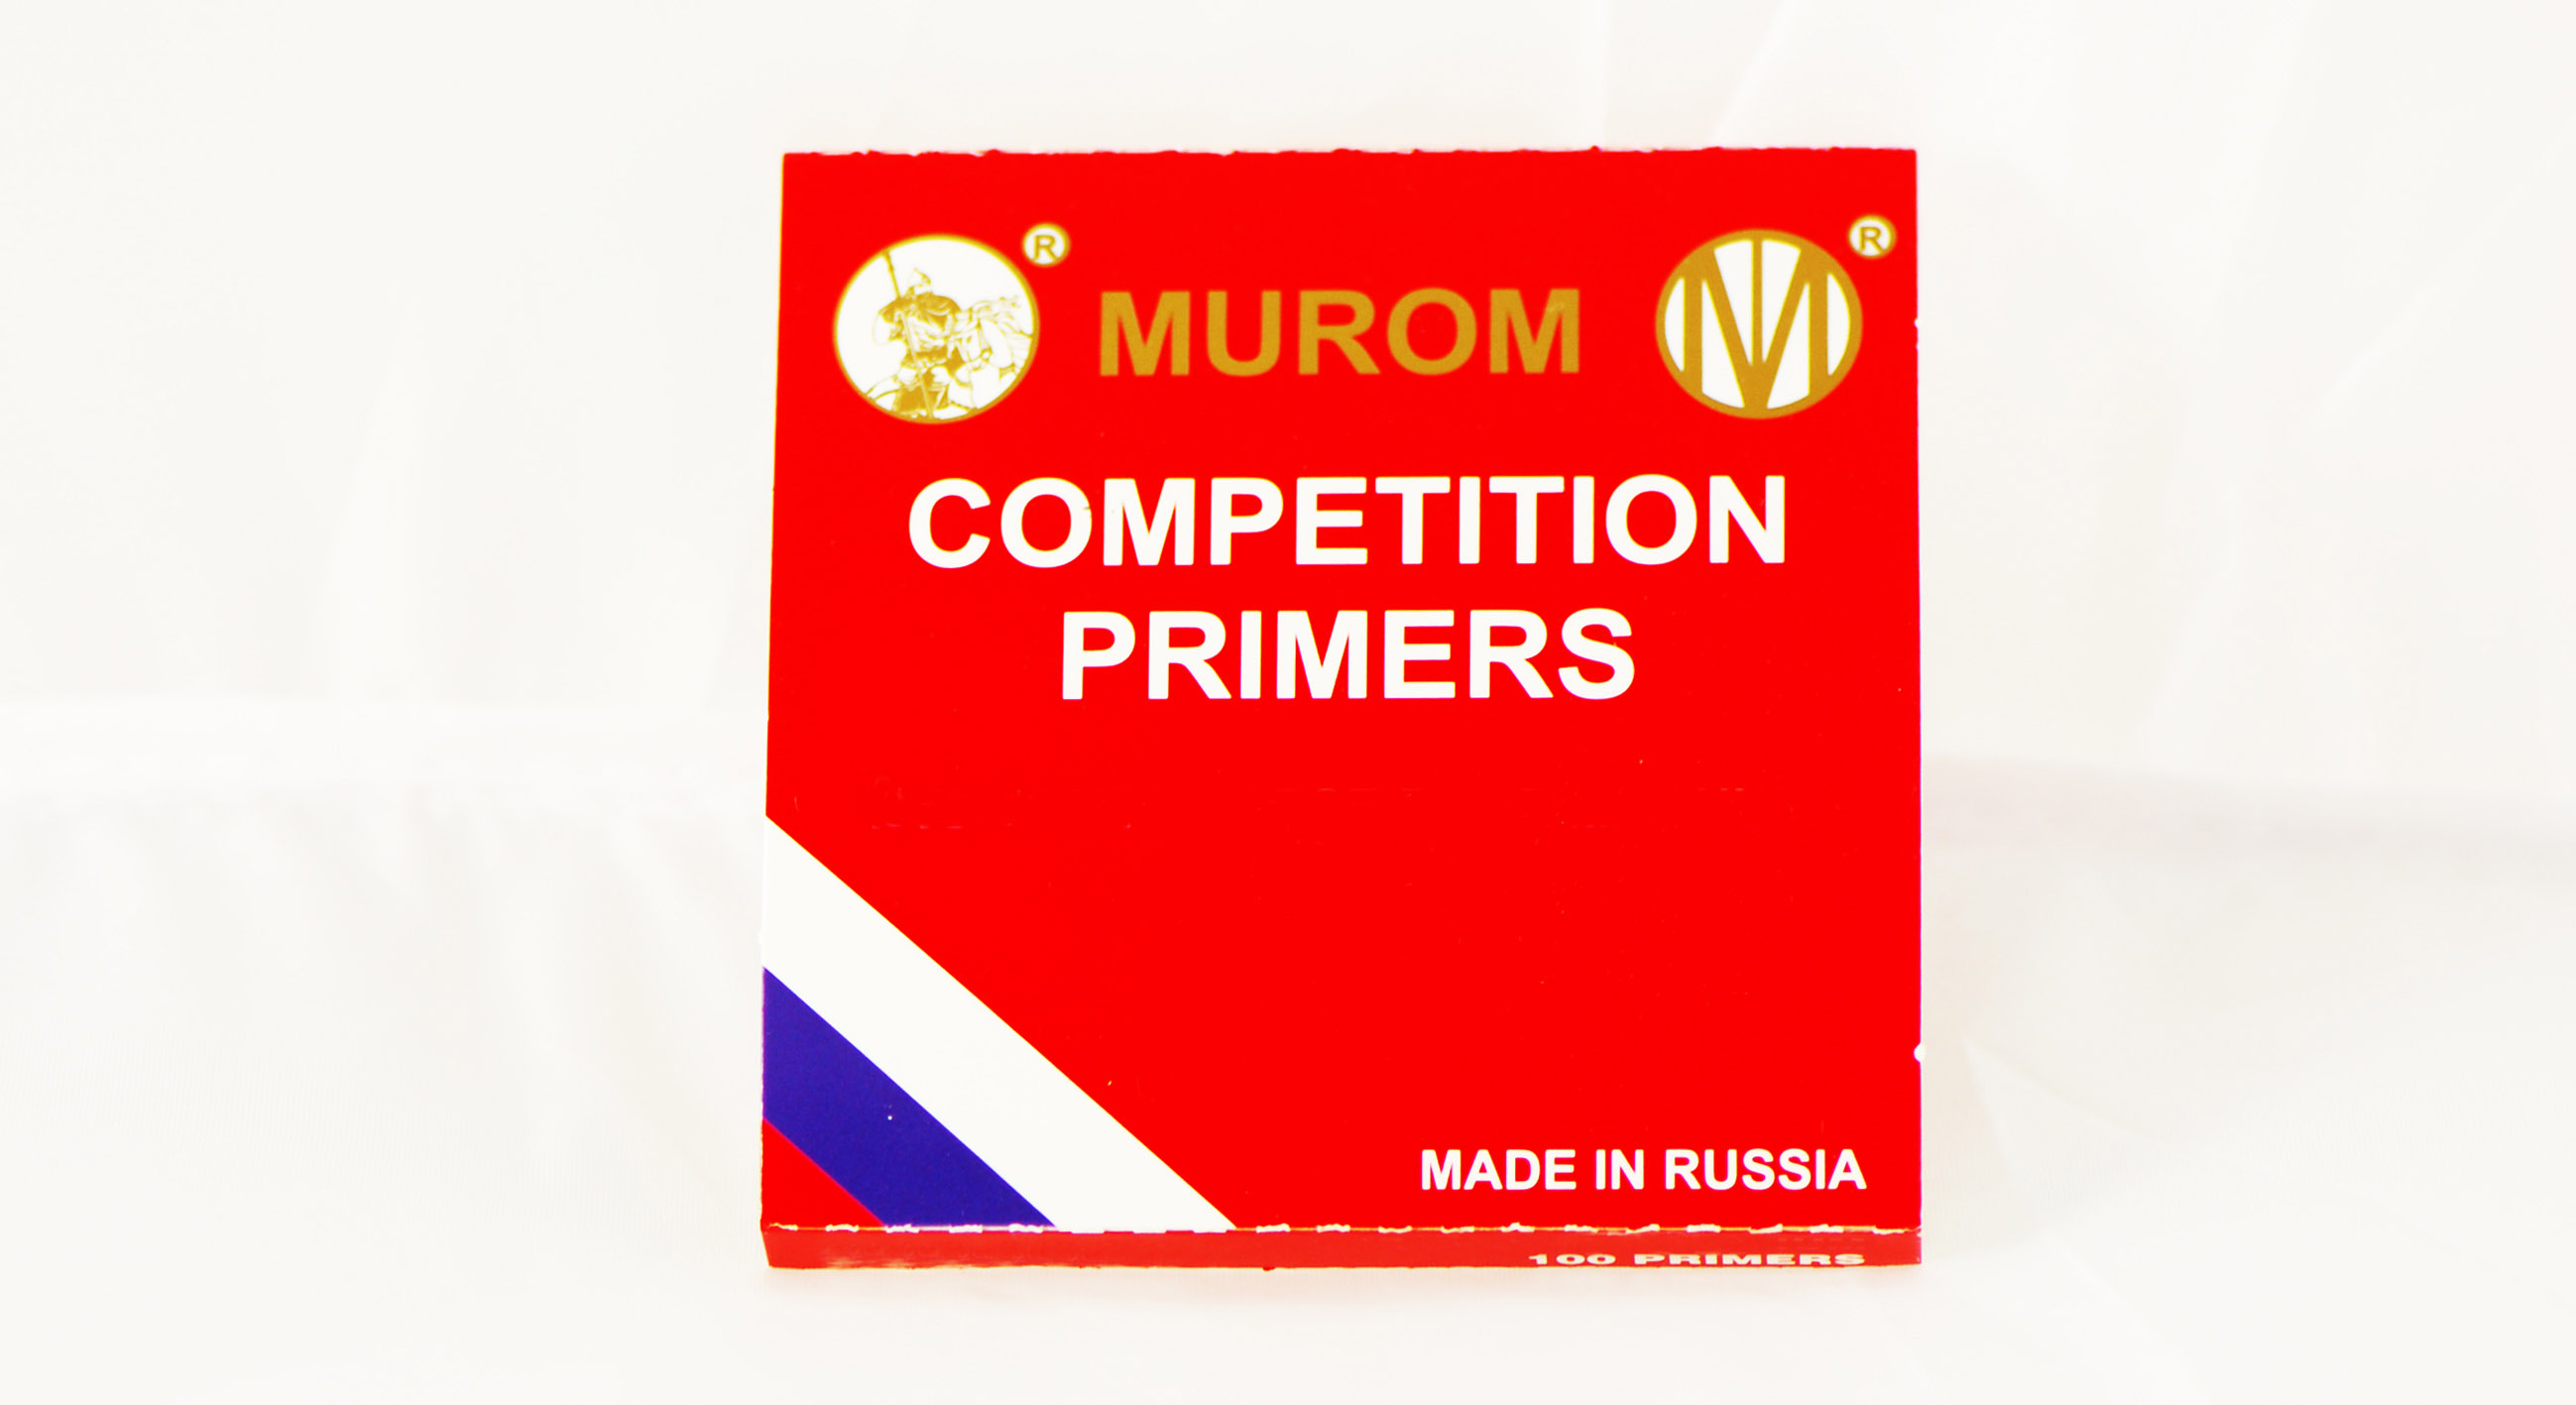 MUROM KVB-45 LARGE PISTOL PRIMERS COMPETITION